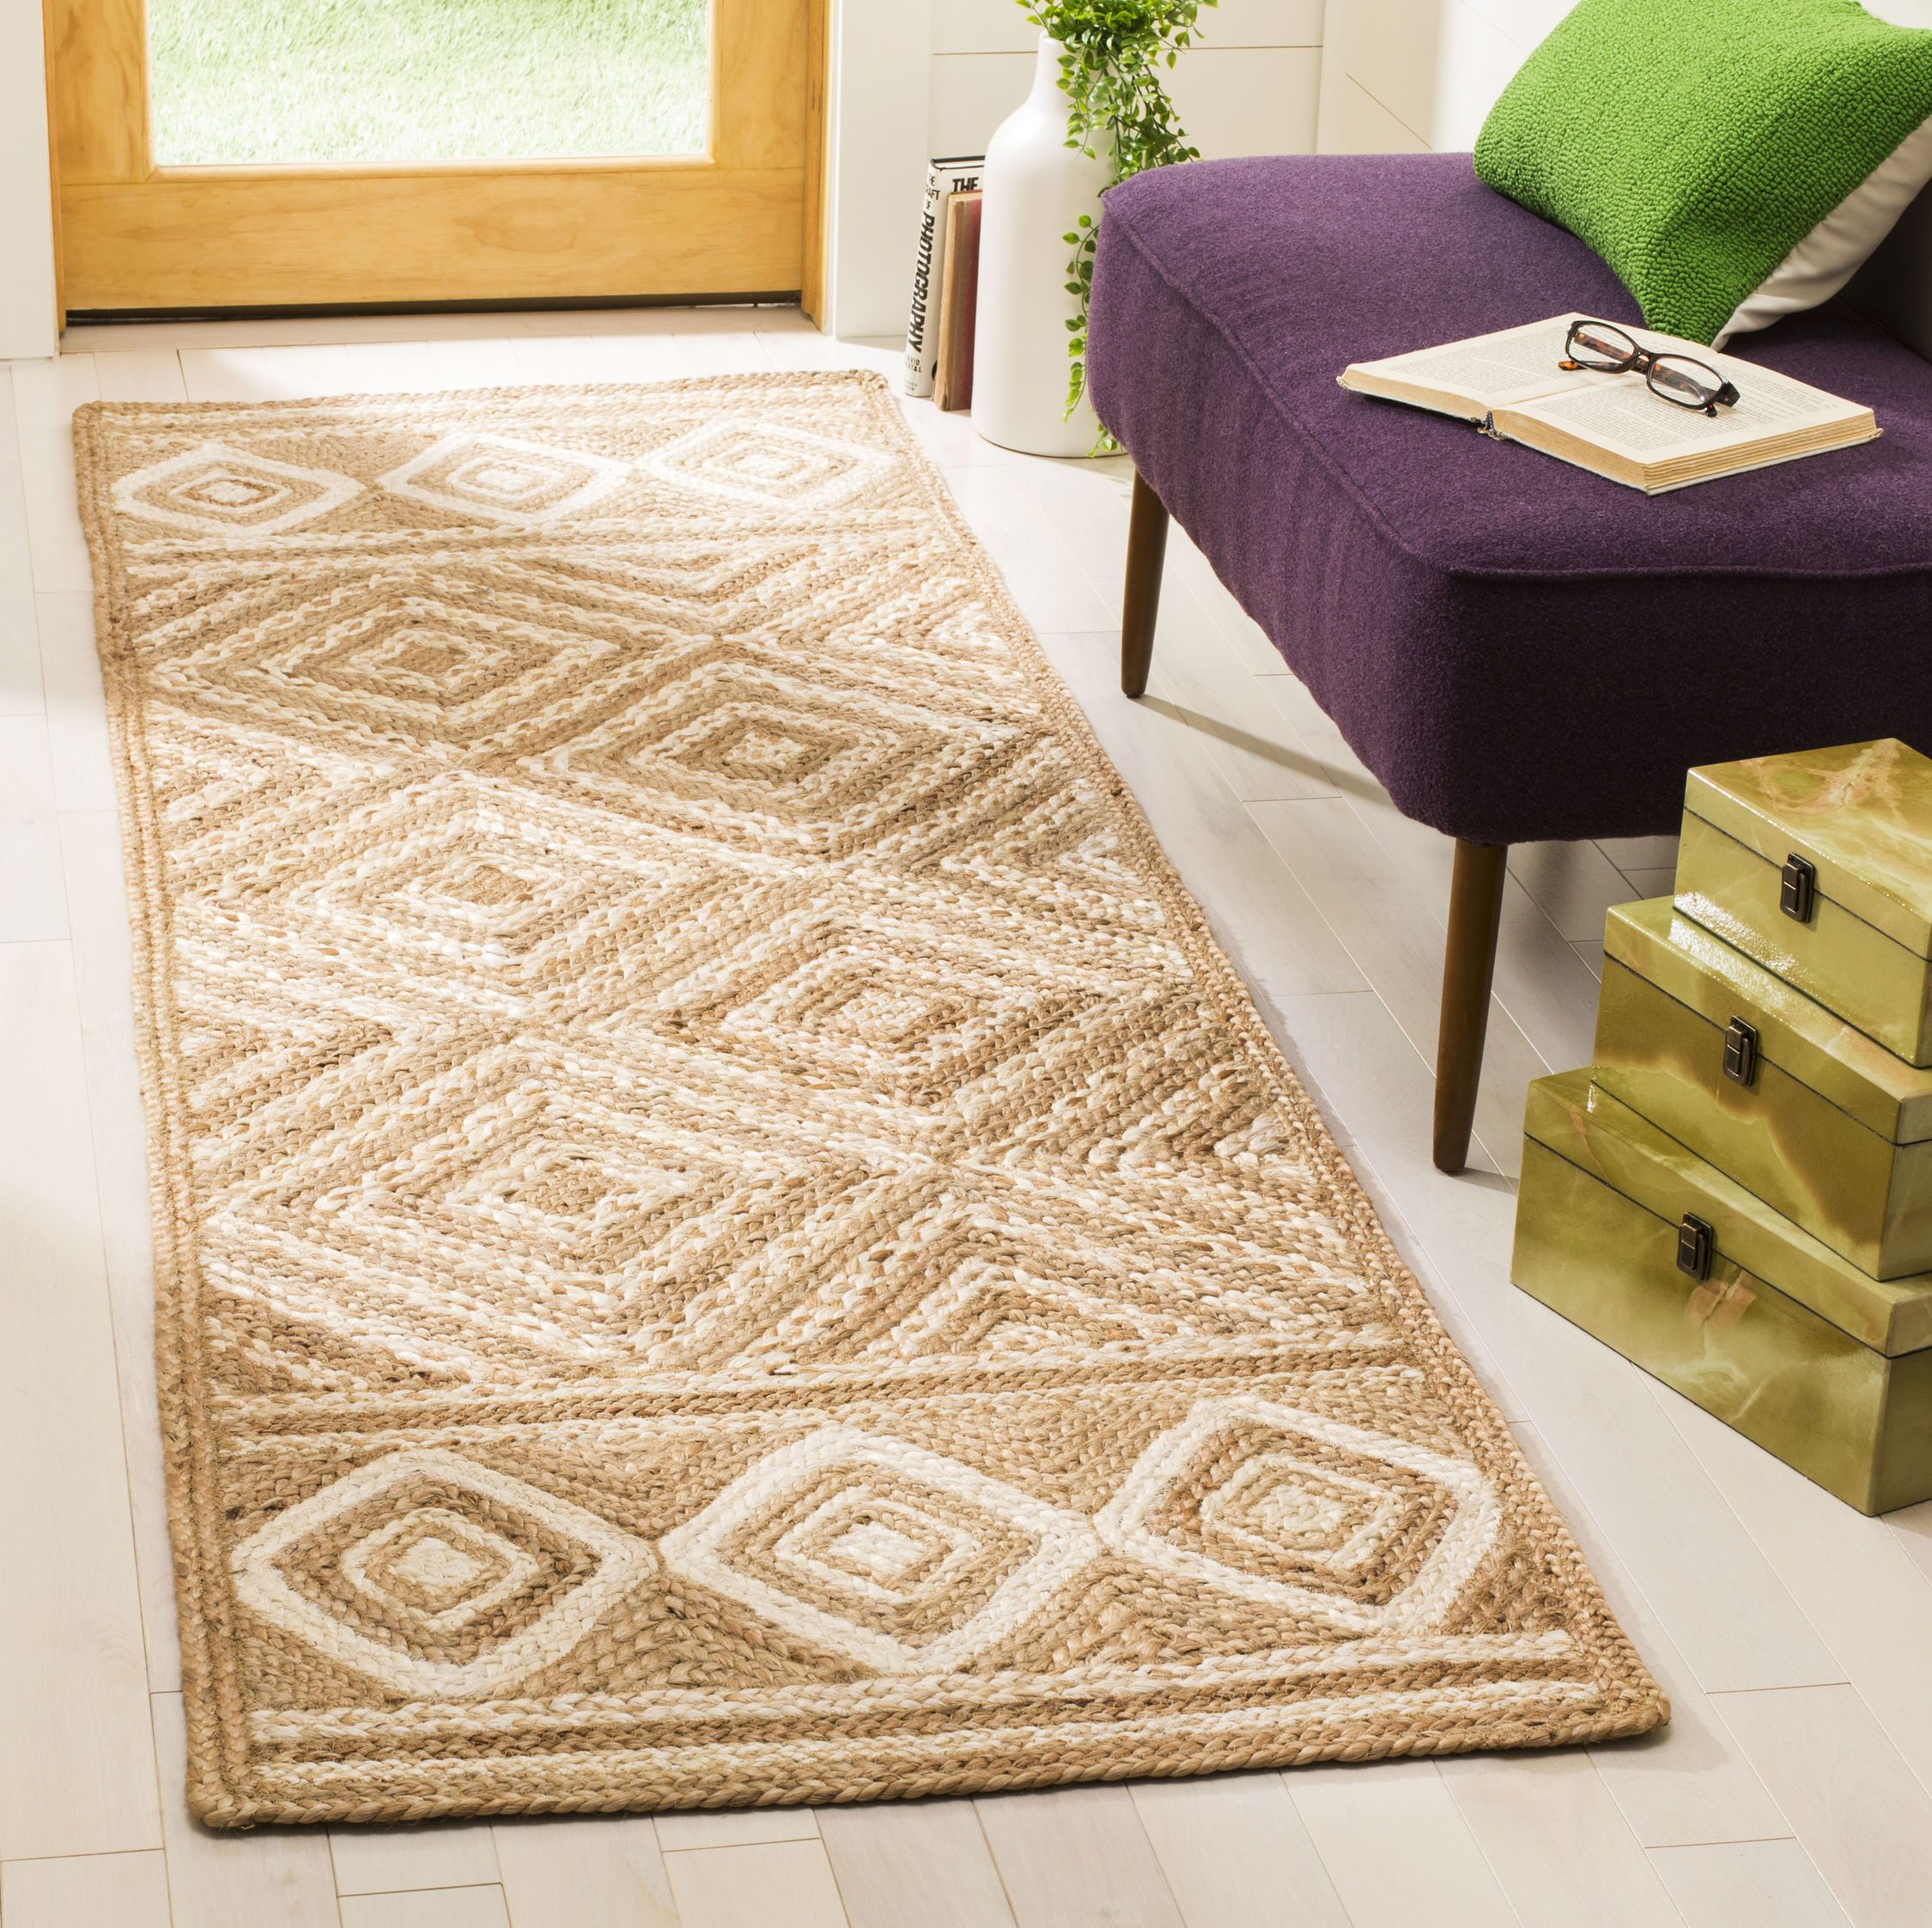 Nf880b Color Natural Ivory Size 2 6 X 8 Area Rug Sizes